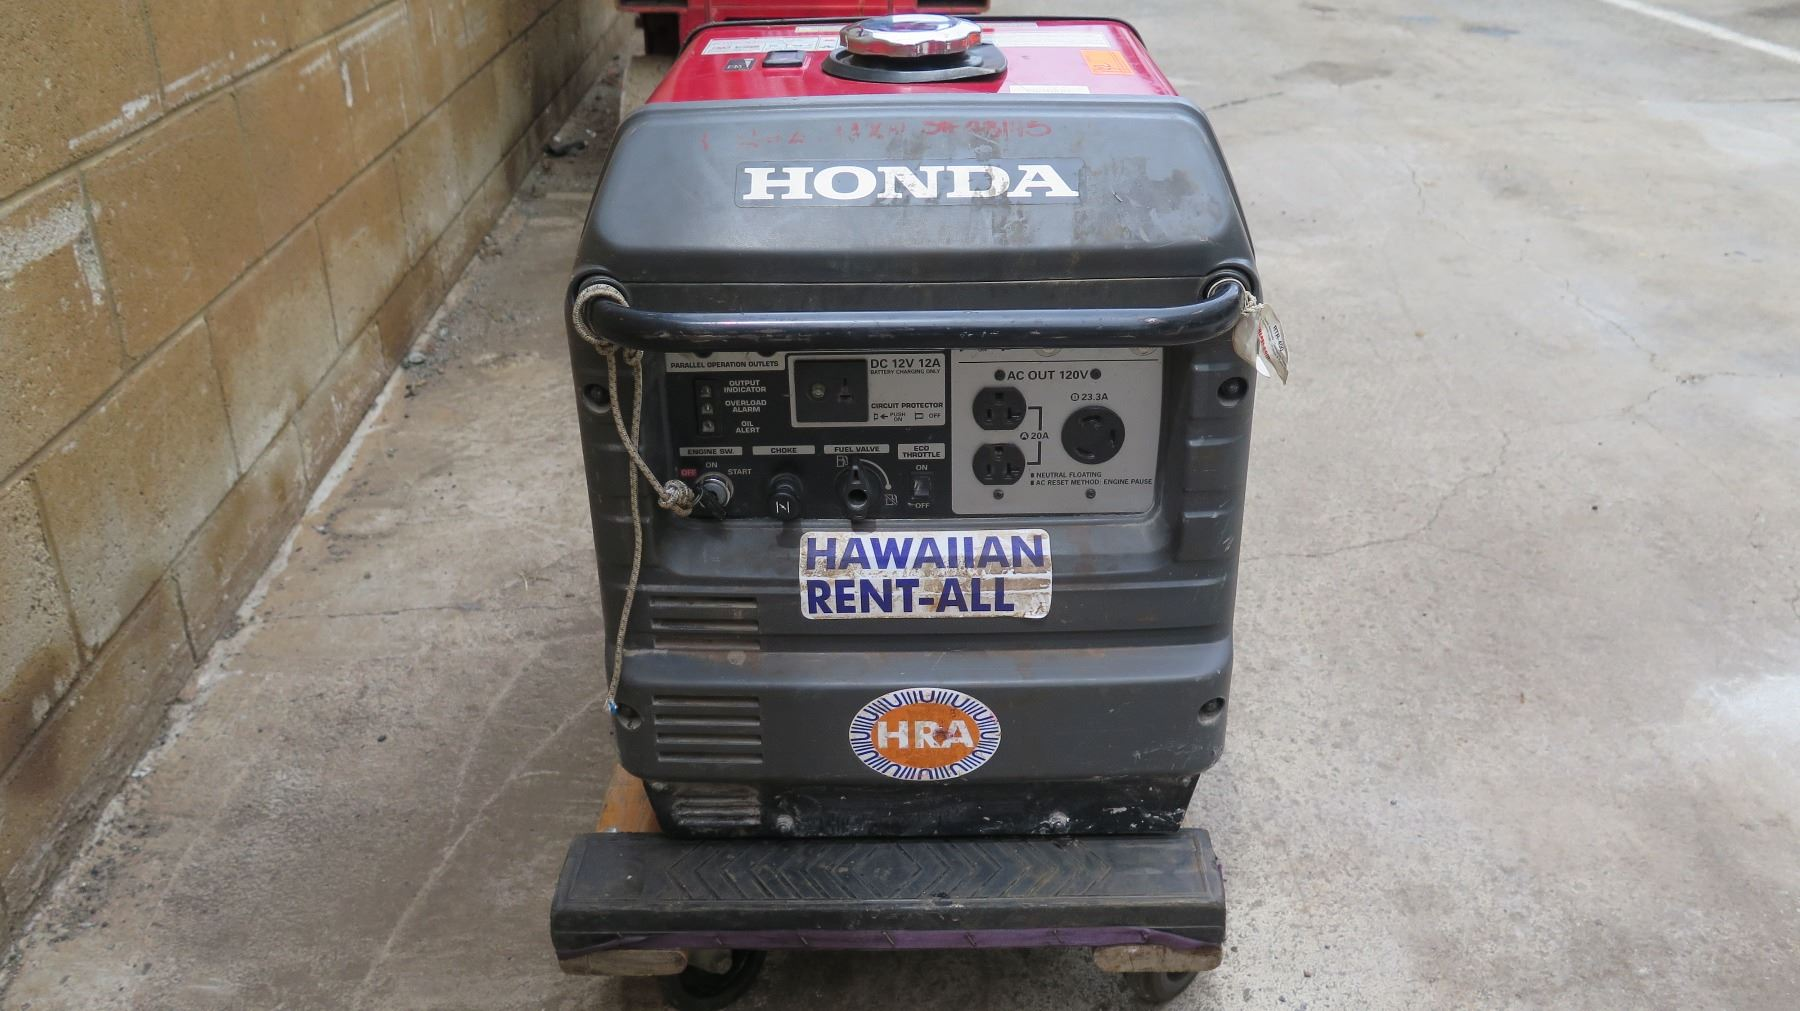 ... Image 2 : Honda 3,000 Watt Super Quiet Generator Electric Start Gas ...